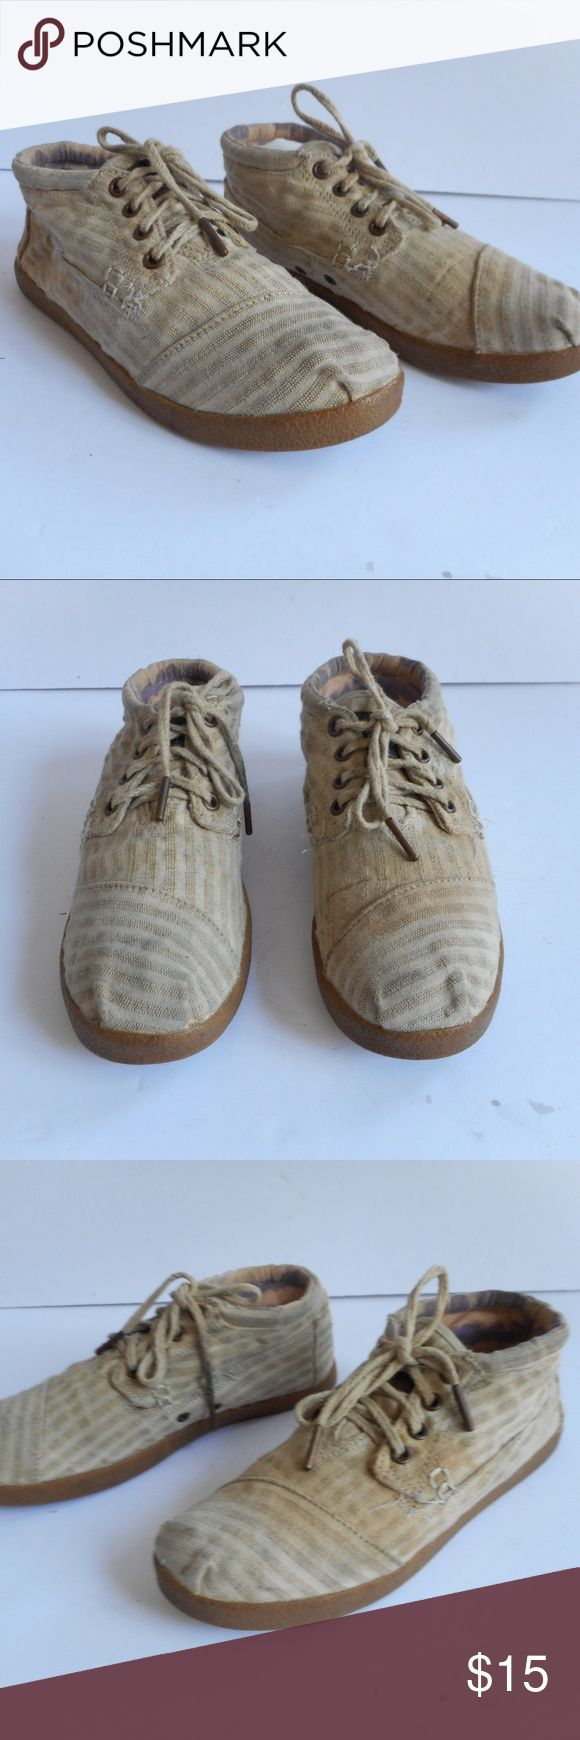 Toms Botas Flat Boots Sneakers LAce womens 6.5 Toms Shoes One for One womens Botas stripe tan has some stains throughout not extremely noticeable haven't tried to remove overall great shape (except staining) priced low for that absolutely no offers  under 15 takes $3 automatic Toms Shoes Ankle Boots & Booties